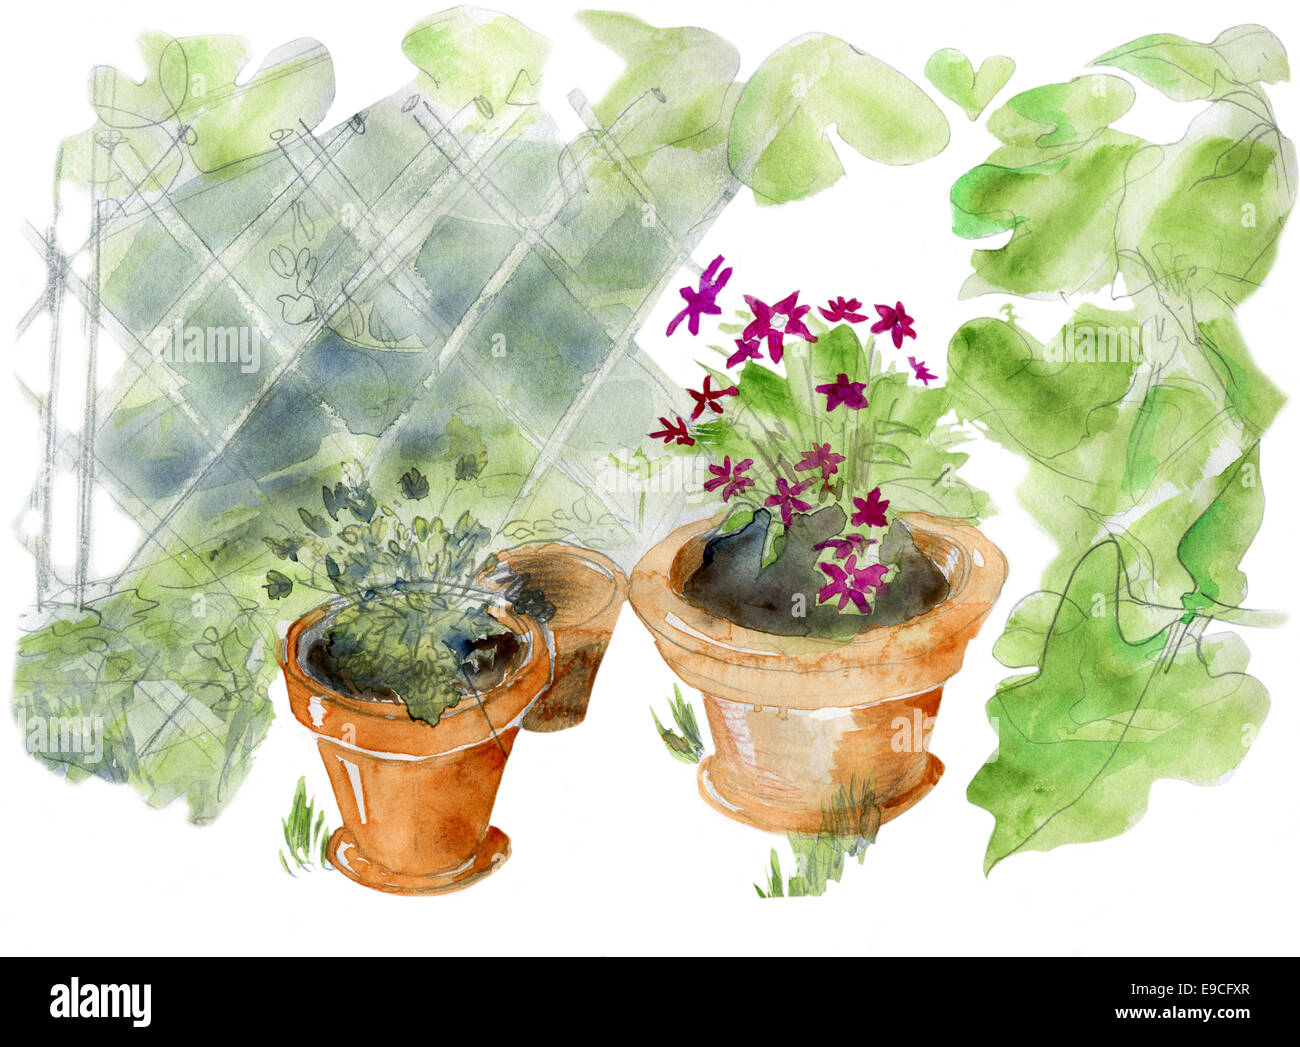 Garden pots, original watercolor sketch. Stock Photo